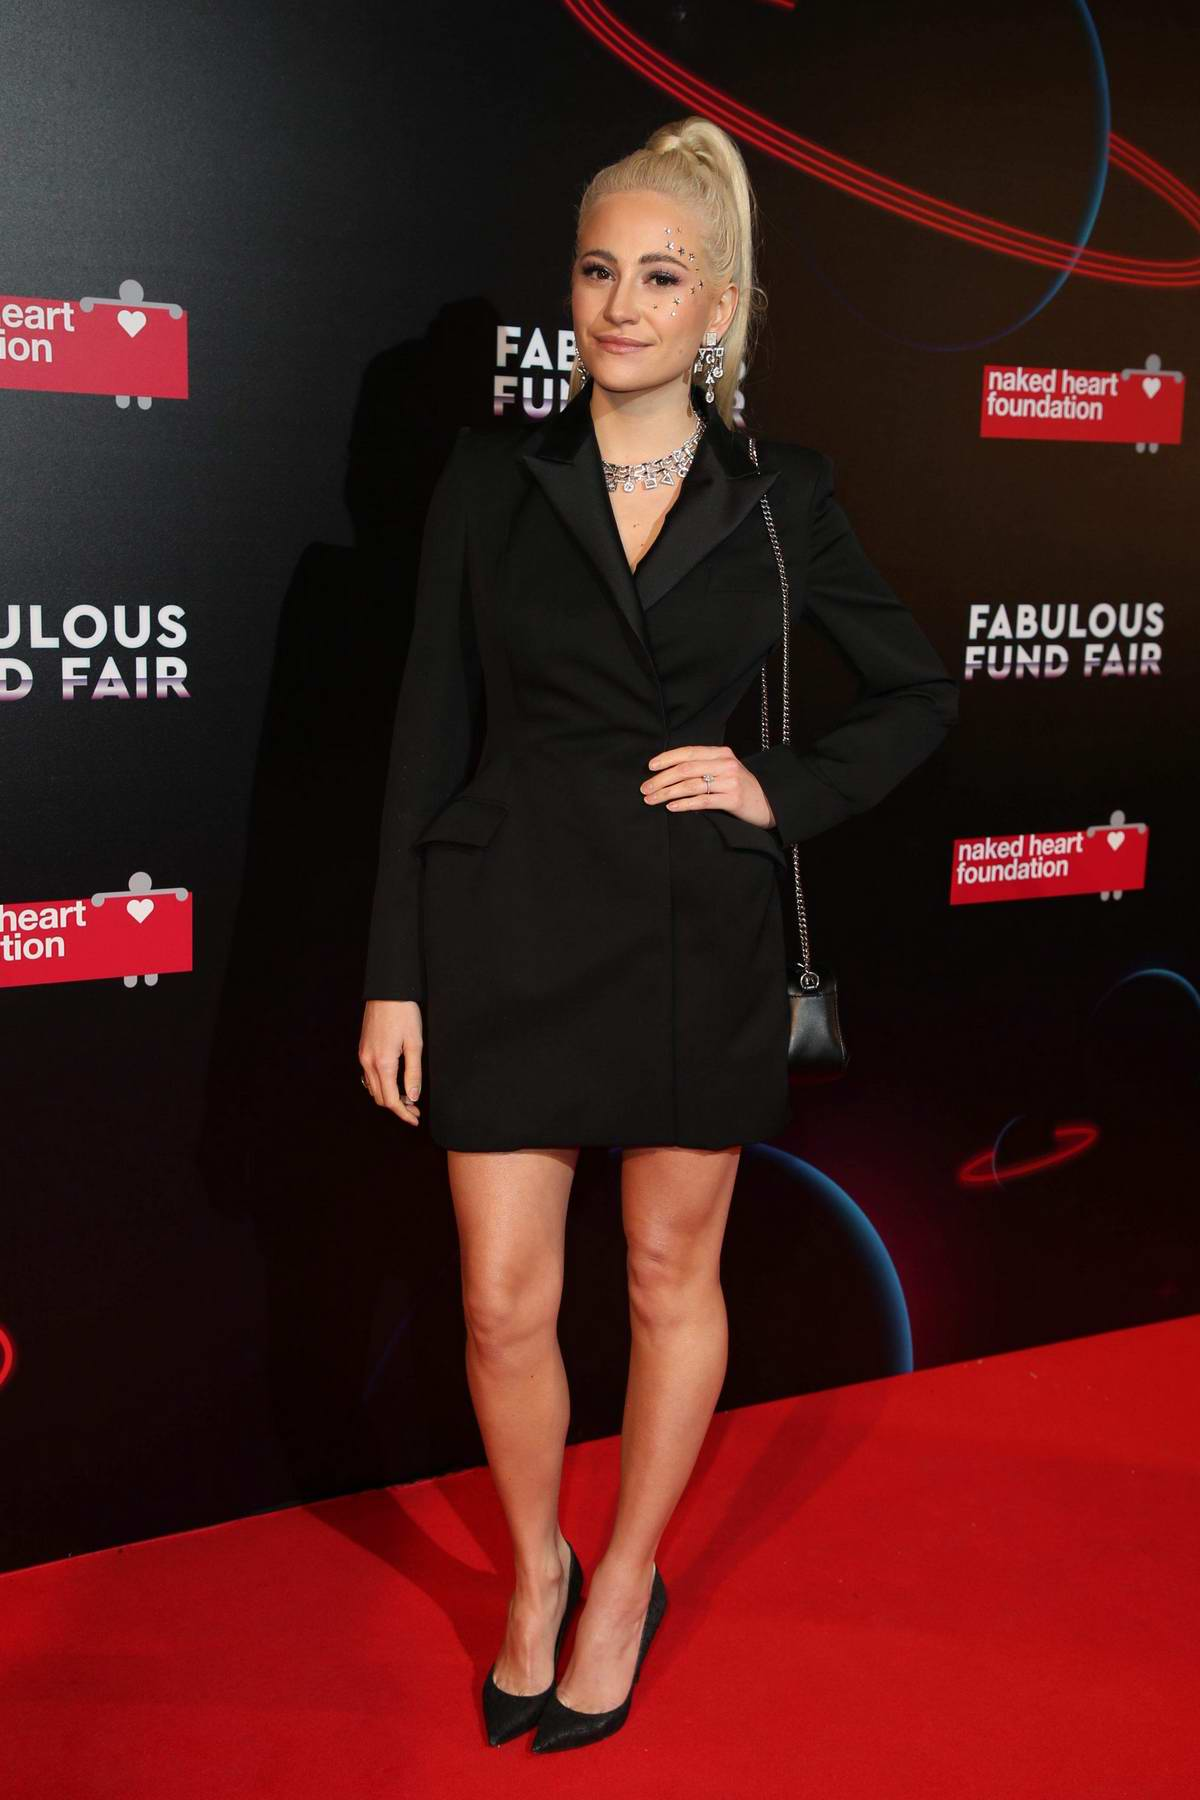 Pixie Lott at Fabulous Fund Fair during London Fashion Week at The Roundhouse in London